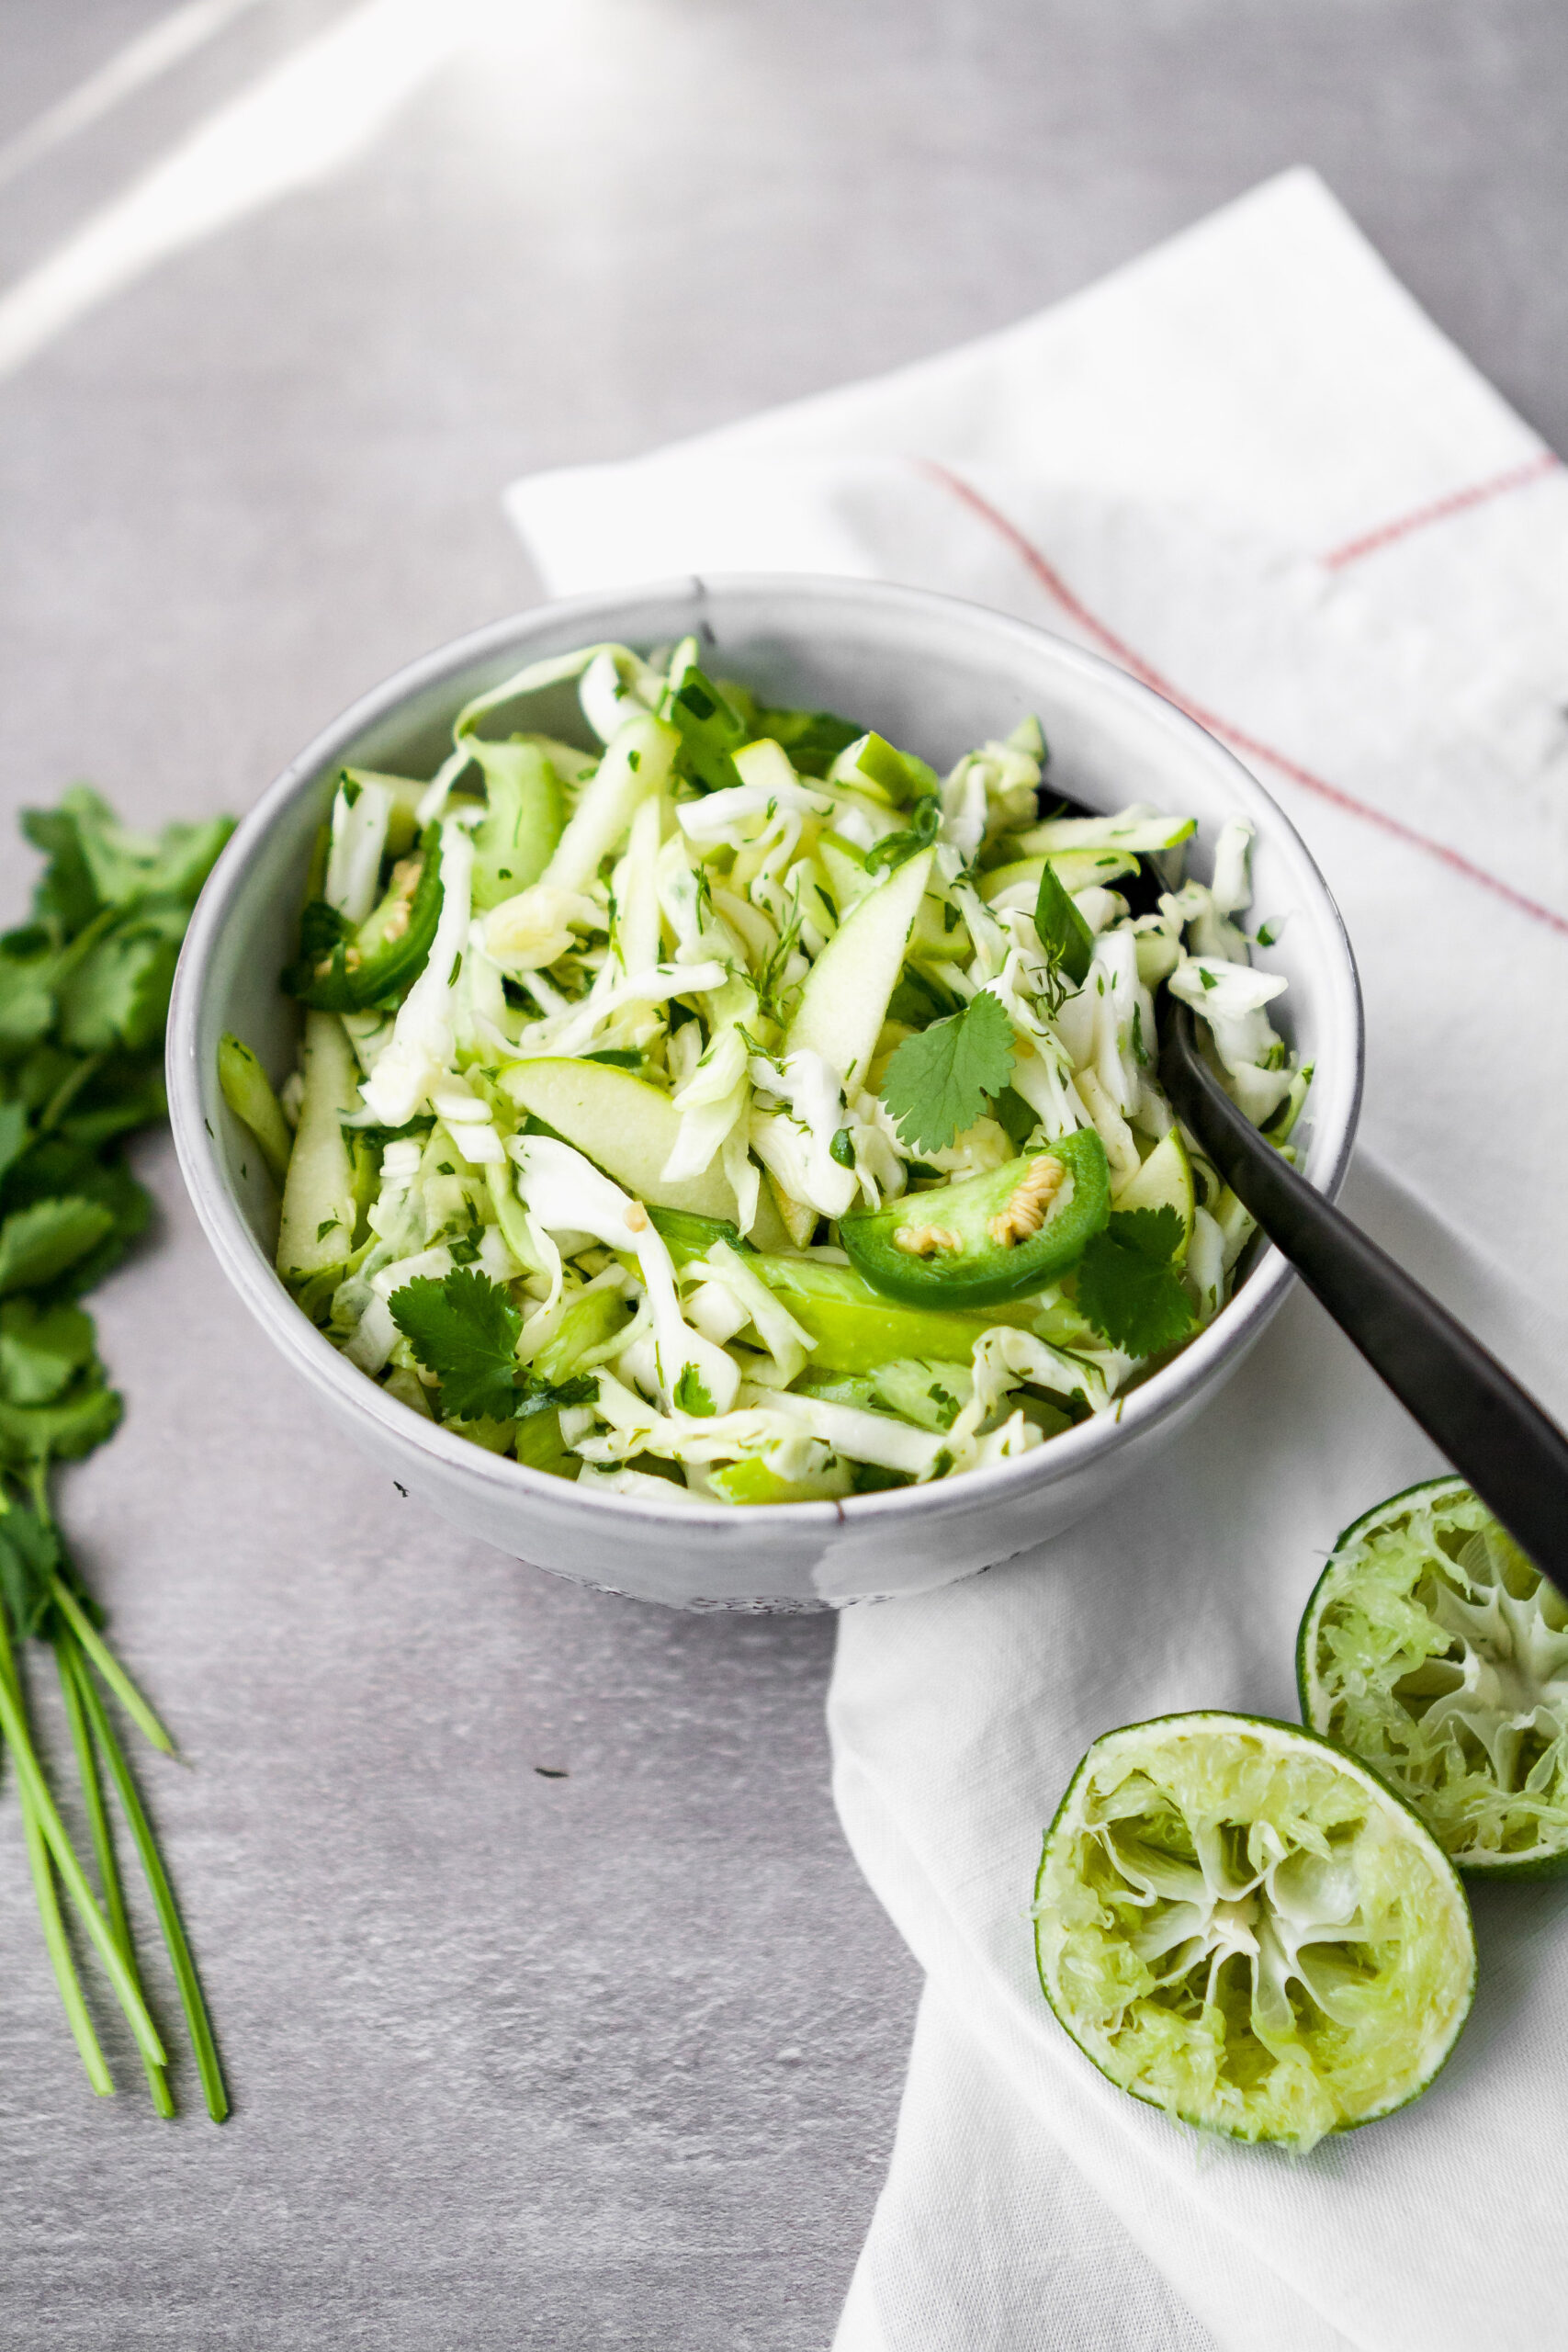 Simple and versatile, this vibrant green slaw makes a perfect side dish or addition to just about any meal. Packed with flavor from cilantro and dill, green apple, jalapeño, and more, this simple slaw is healthy, delicious, and refreshing. | from Lauren Grant of Zestful Kitchen